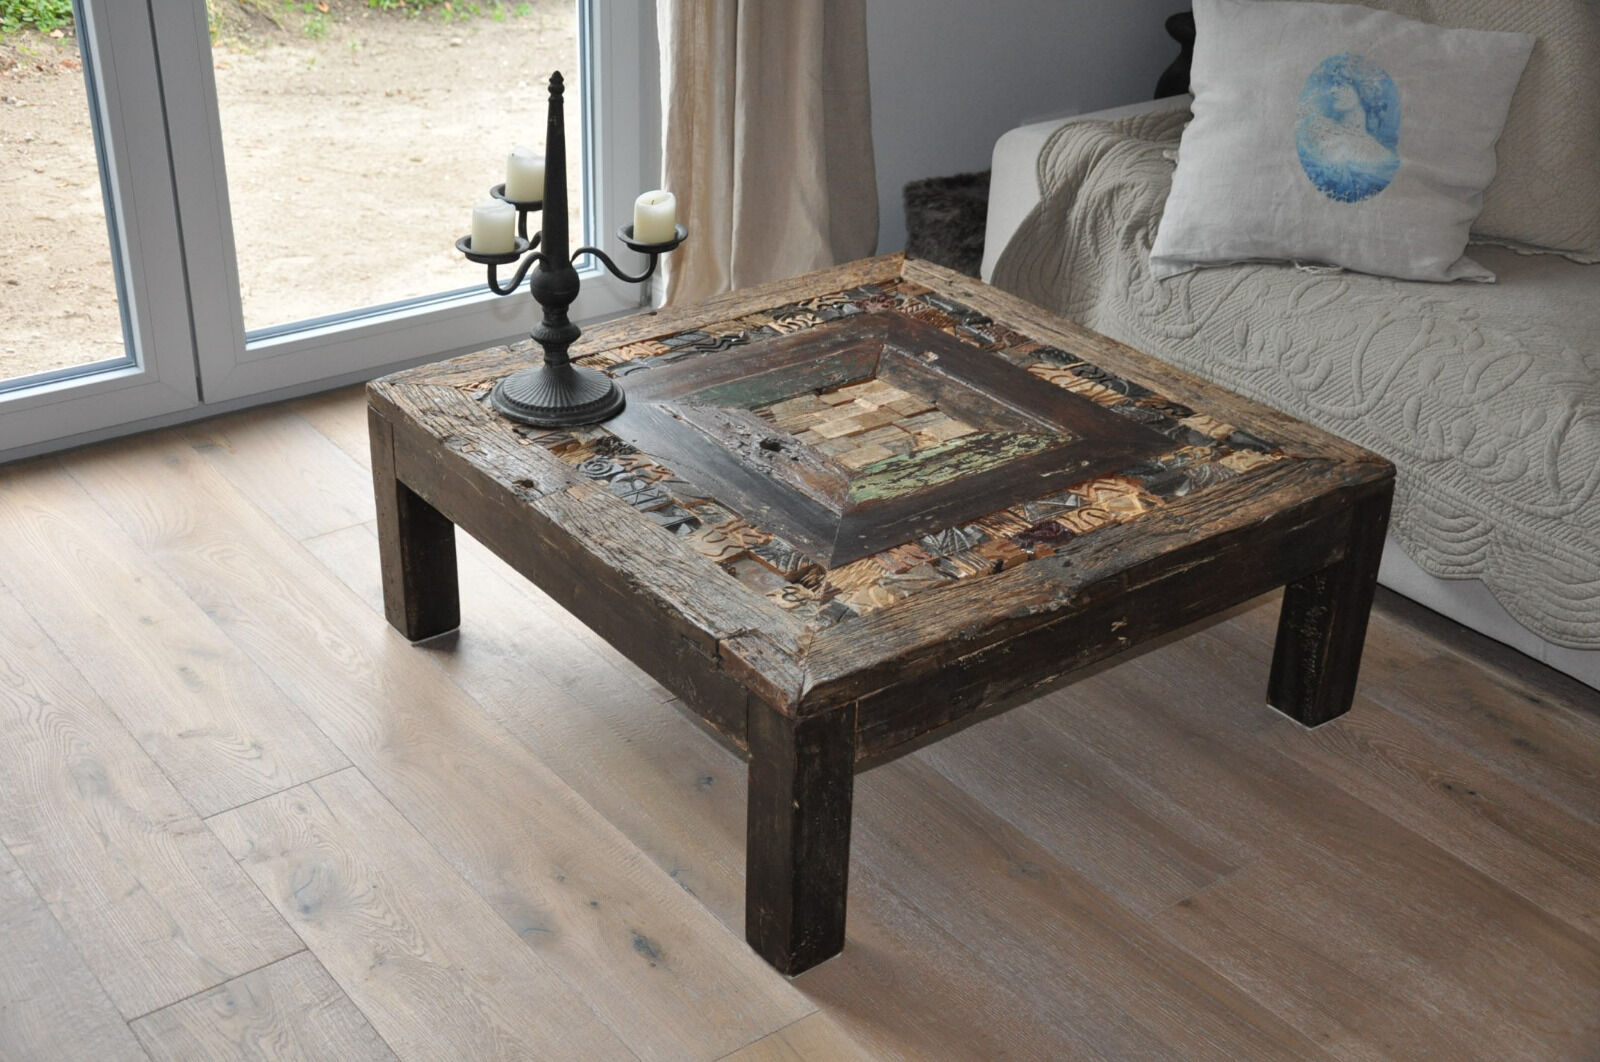 Recycling Couchtisch Traumhafter Couchtisch Orient Recycling Holz Massiv